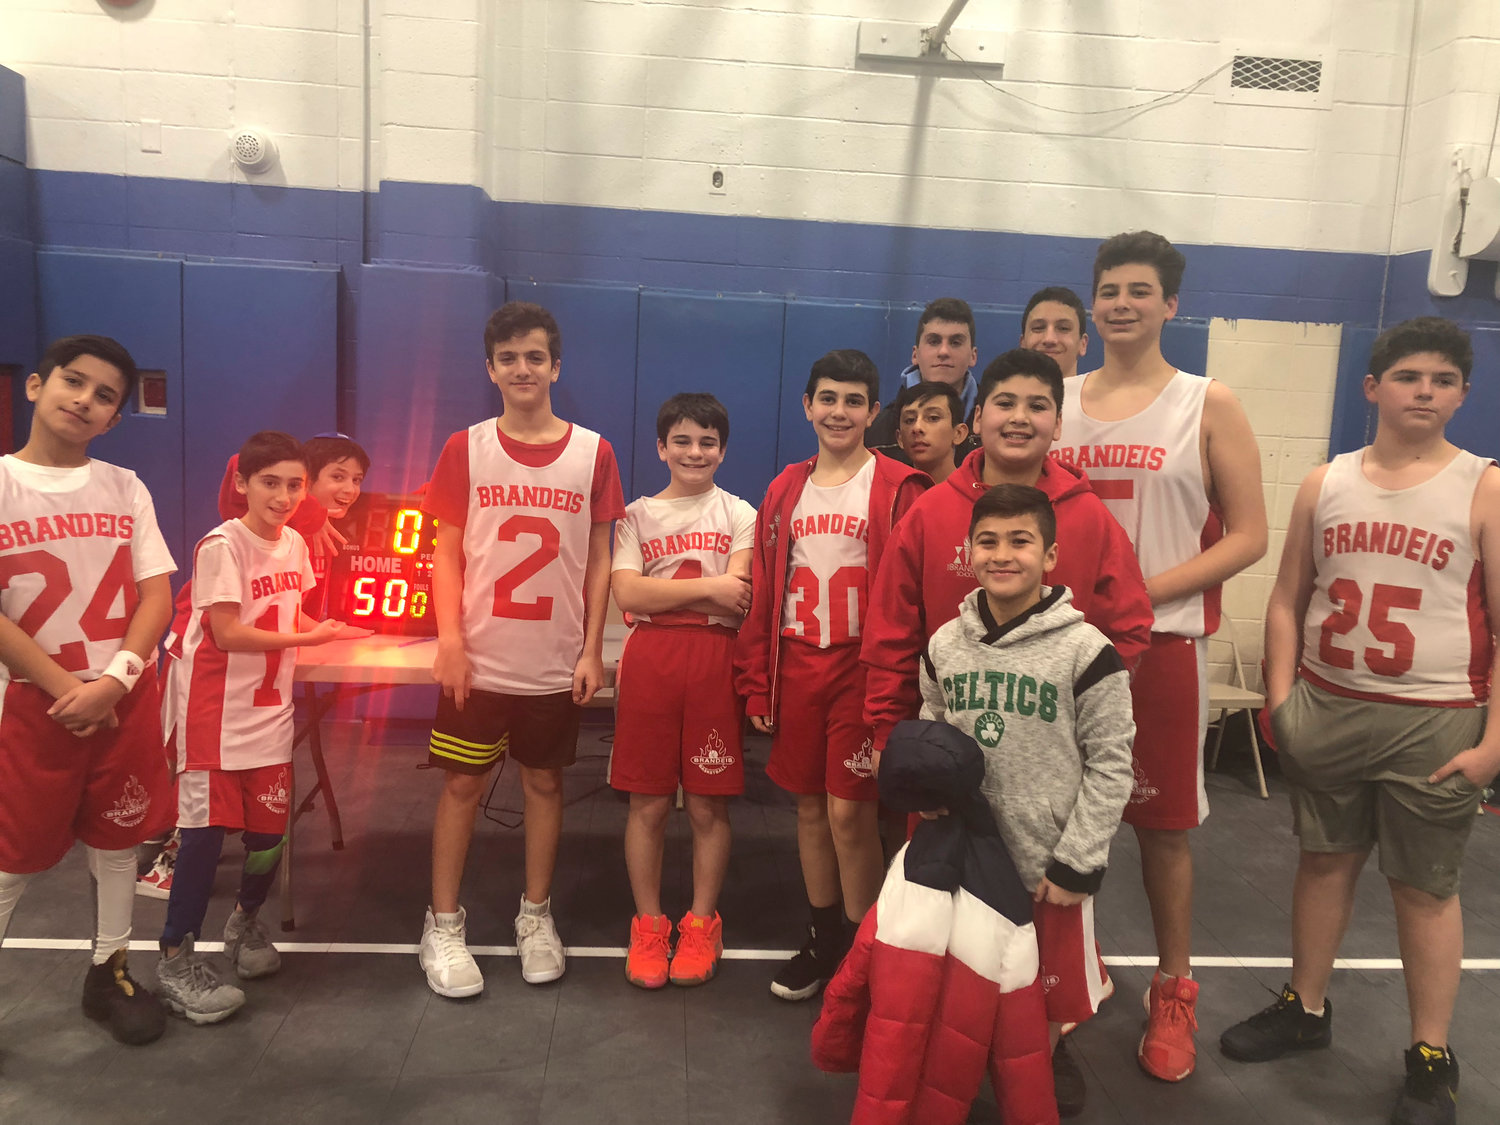 The Brandeis School and the Nassau Herald are running a sports team nickname contest. Above, the Brandeis boys' basketball squad after a 50-42 victory over Yeshiva Har Torah this past season.